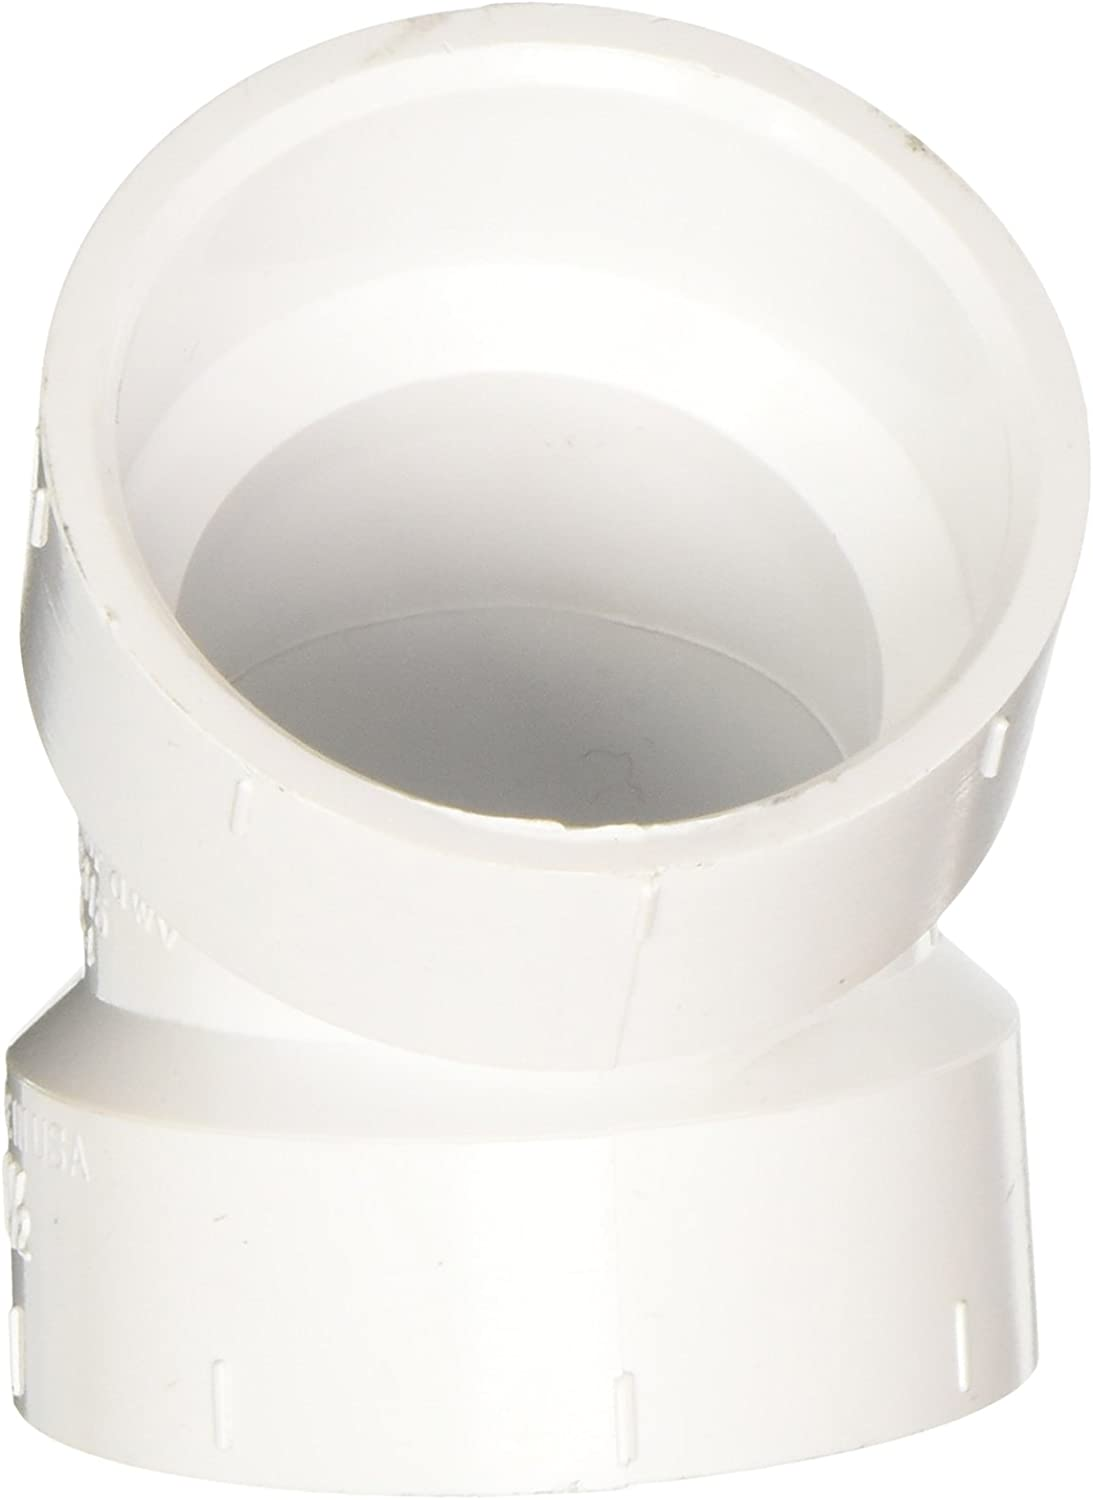 Genova Products 70615 Sanitary Albuquerque Mall Elbow Pipe 2